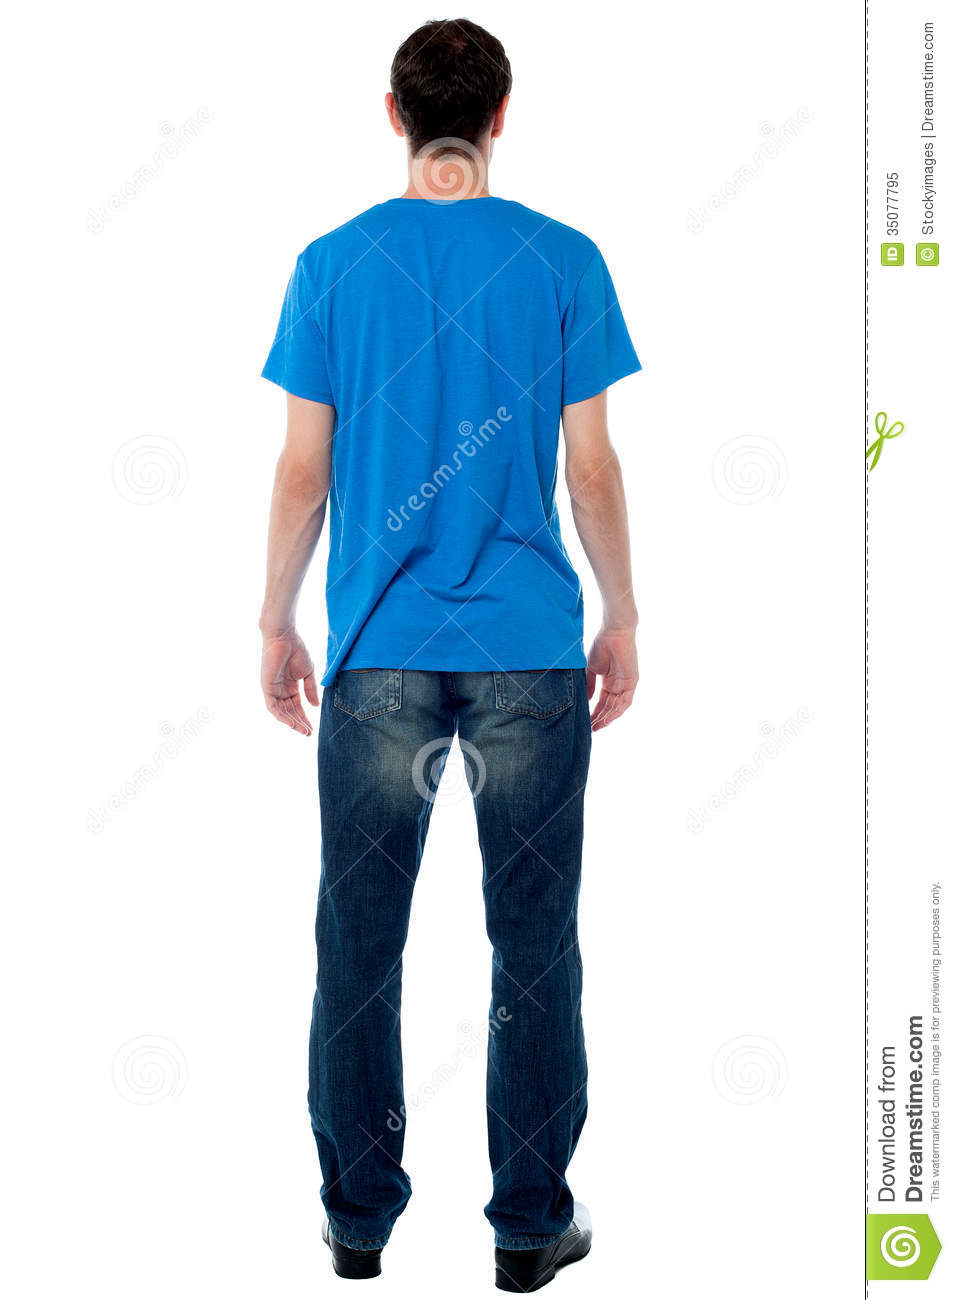 view of united states map with Royalty Free Stock Photo Casual Young Man Facing Wall Back Pose Guy Over White Image35077795 on 69e6ad12 B23c 422a B70c 3c749d42d9b5 moreover 2297  tles Island Marina Jensen Beach FL United States additionally Cc8bf7bb A46d 4792 98b9 098a2b0d8532 as well 2774bacb 63af 4a79 Ab97 37a9b4f7121b further Royalty Free Stock Photo Casual Young Man Facing Wall Back Pose Guy Over White Image35077795.